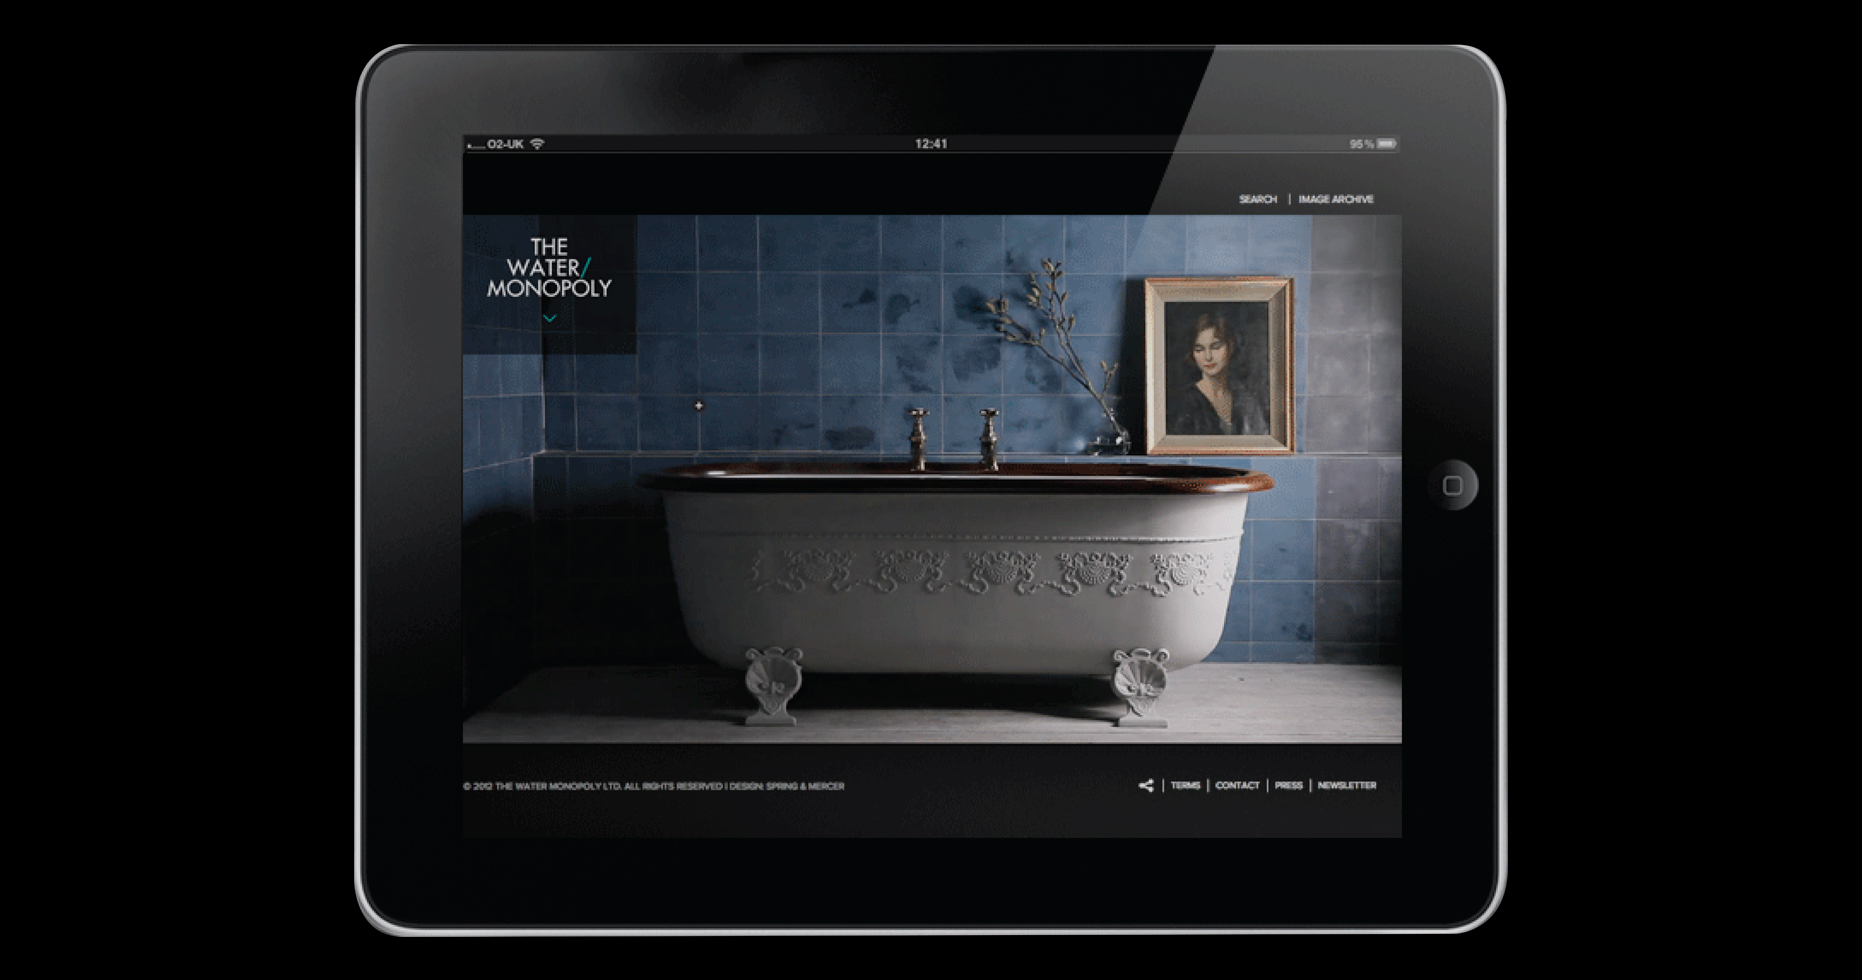 ipad showing The Water Monopoly website that features an antique bath